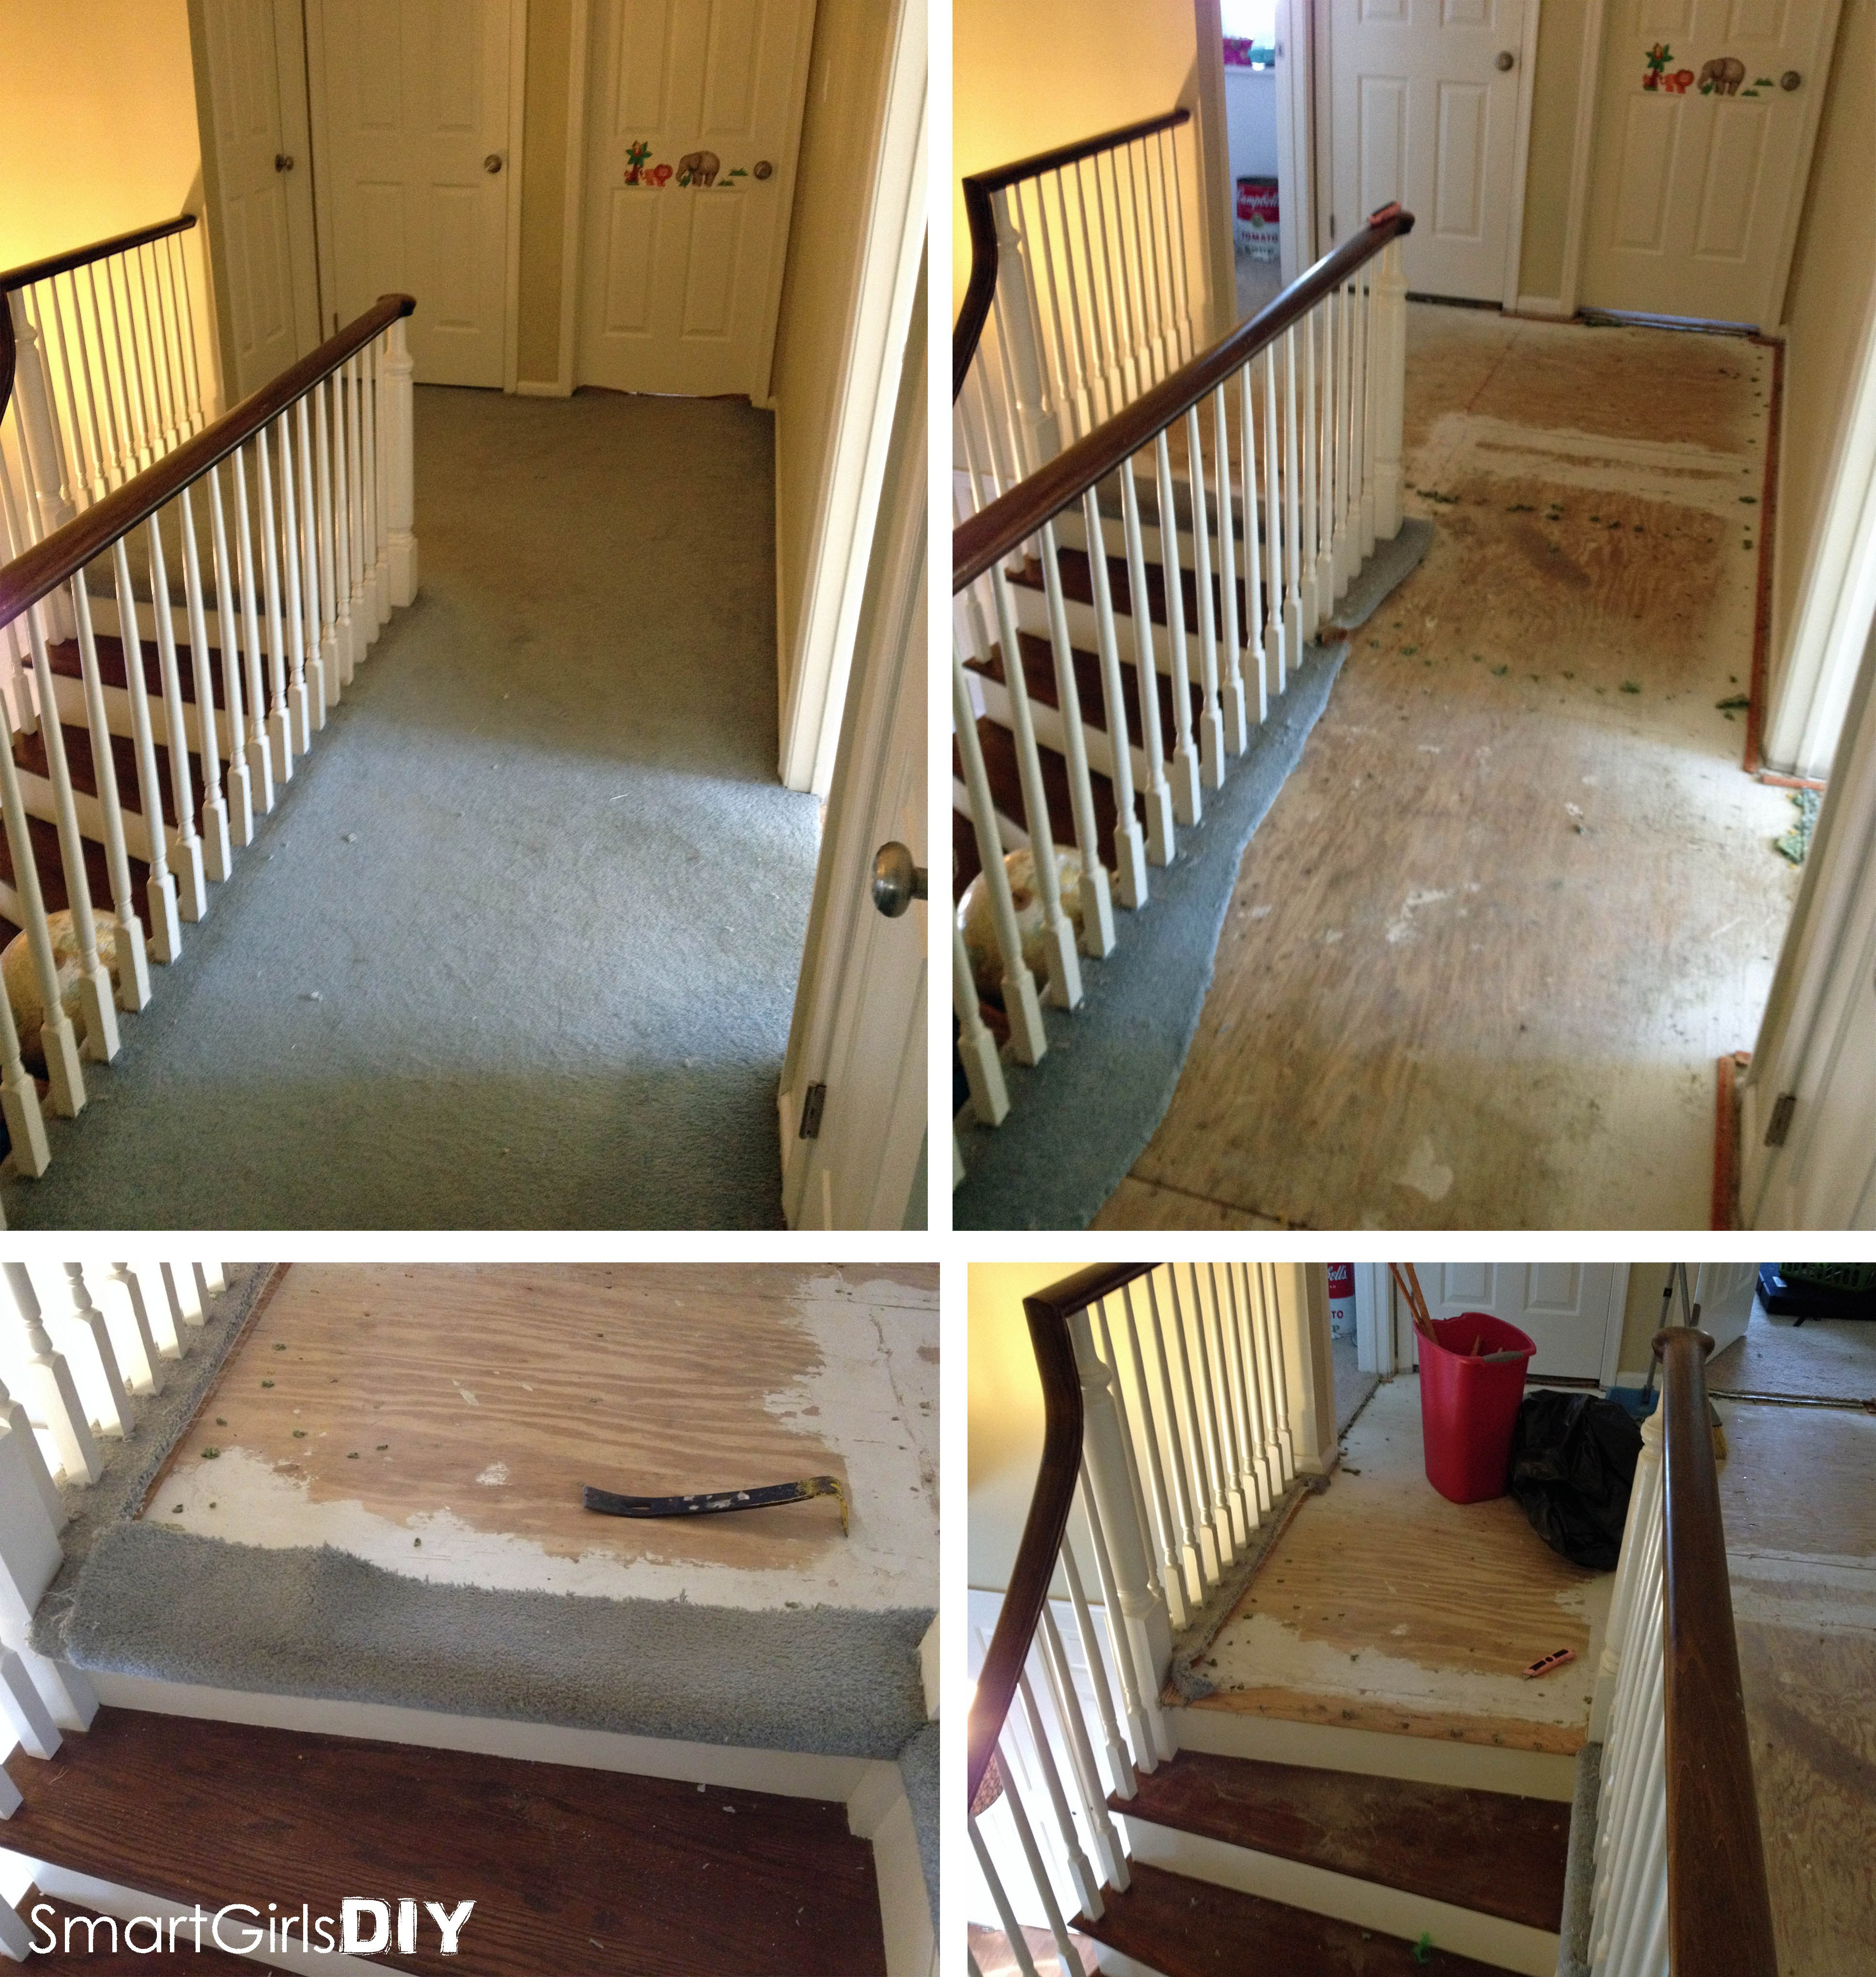 what tools are needed to install hardwood flooring of upstairs hallway 1 installing hardwood floors for removing carpet from hallway installing the hardwood